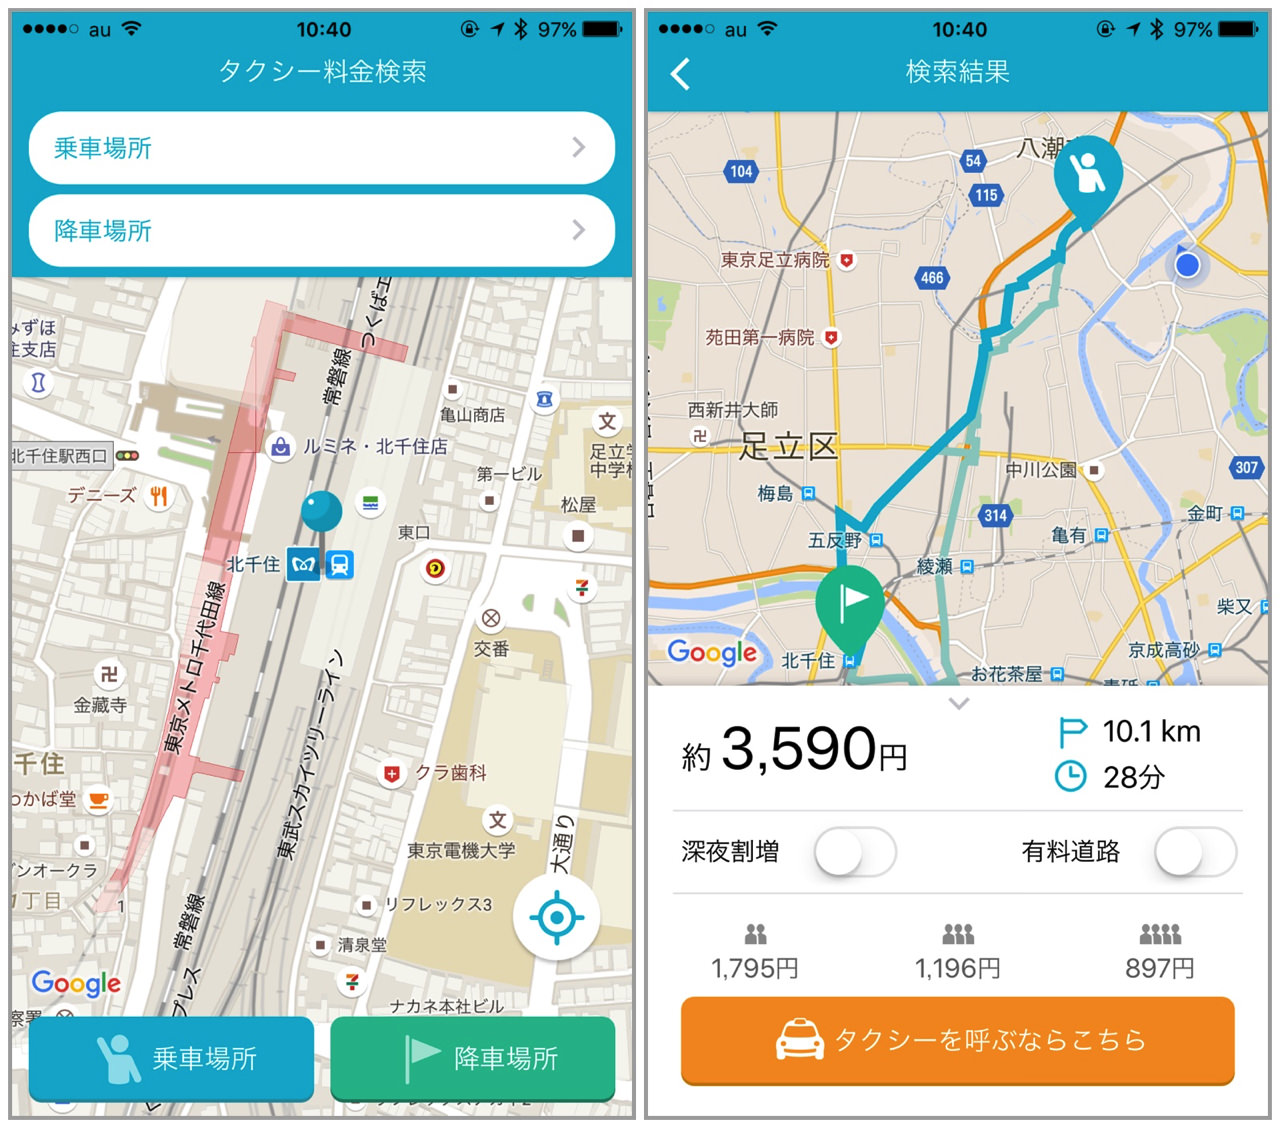 Iphone app taxi fares can search2